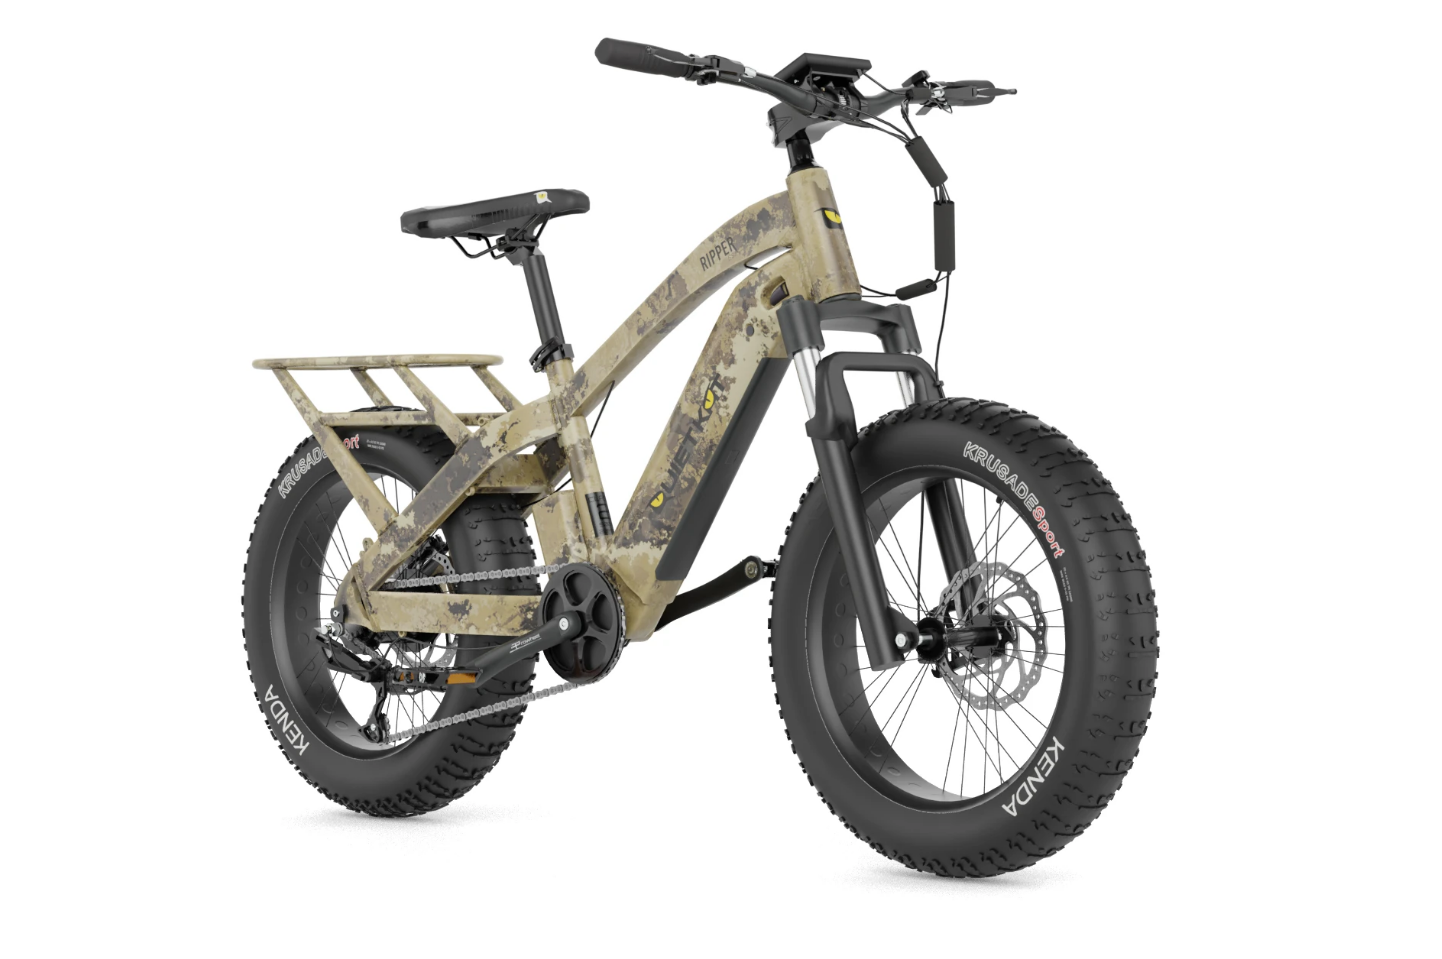 2021 Quietkat Ripper Kids Electric Bike